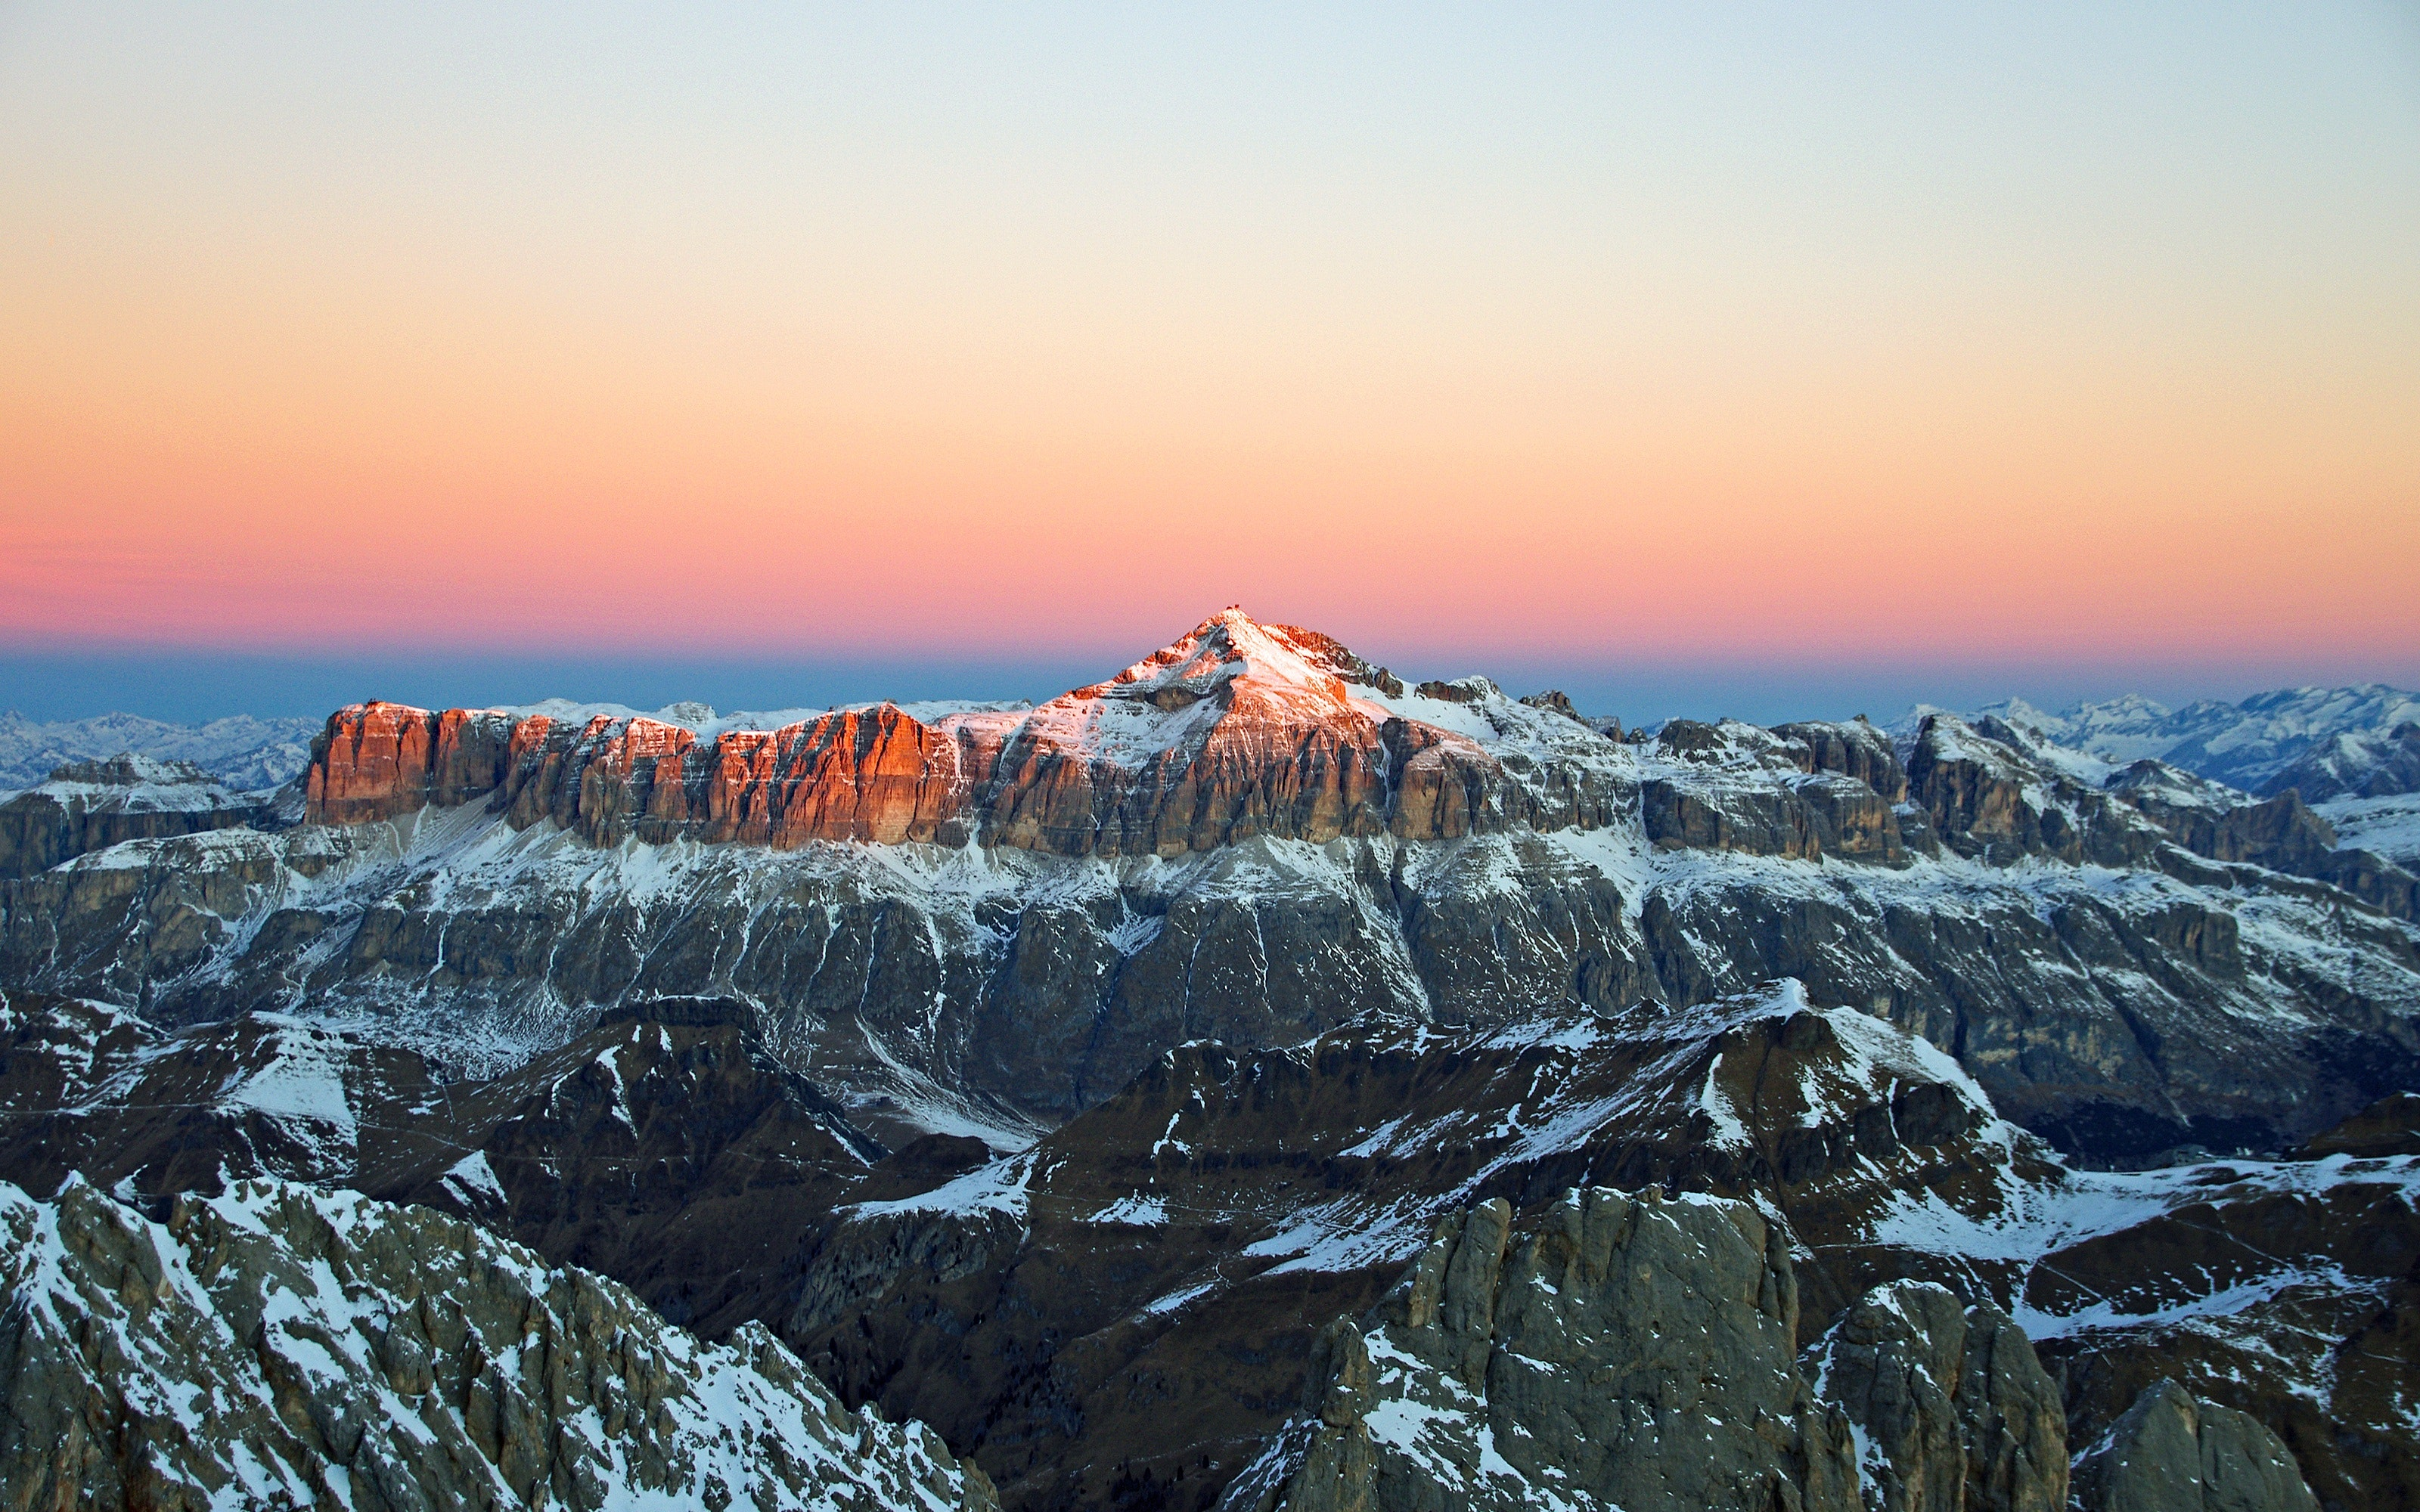 View of snow covered mountain during sunset photo